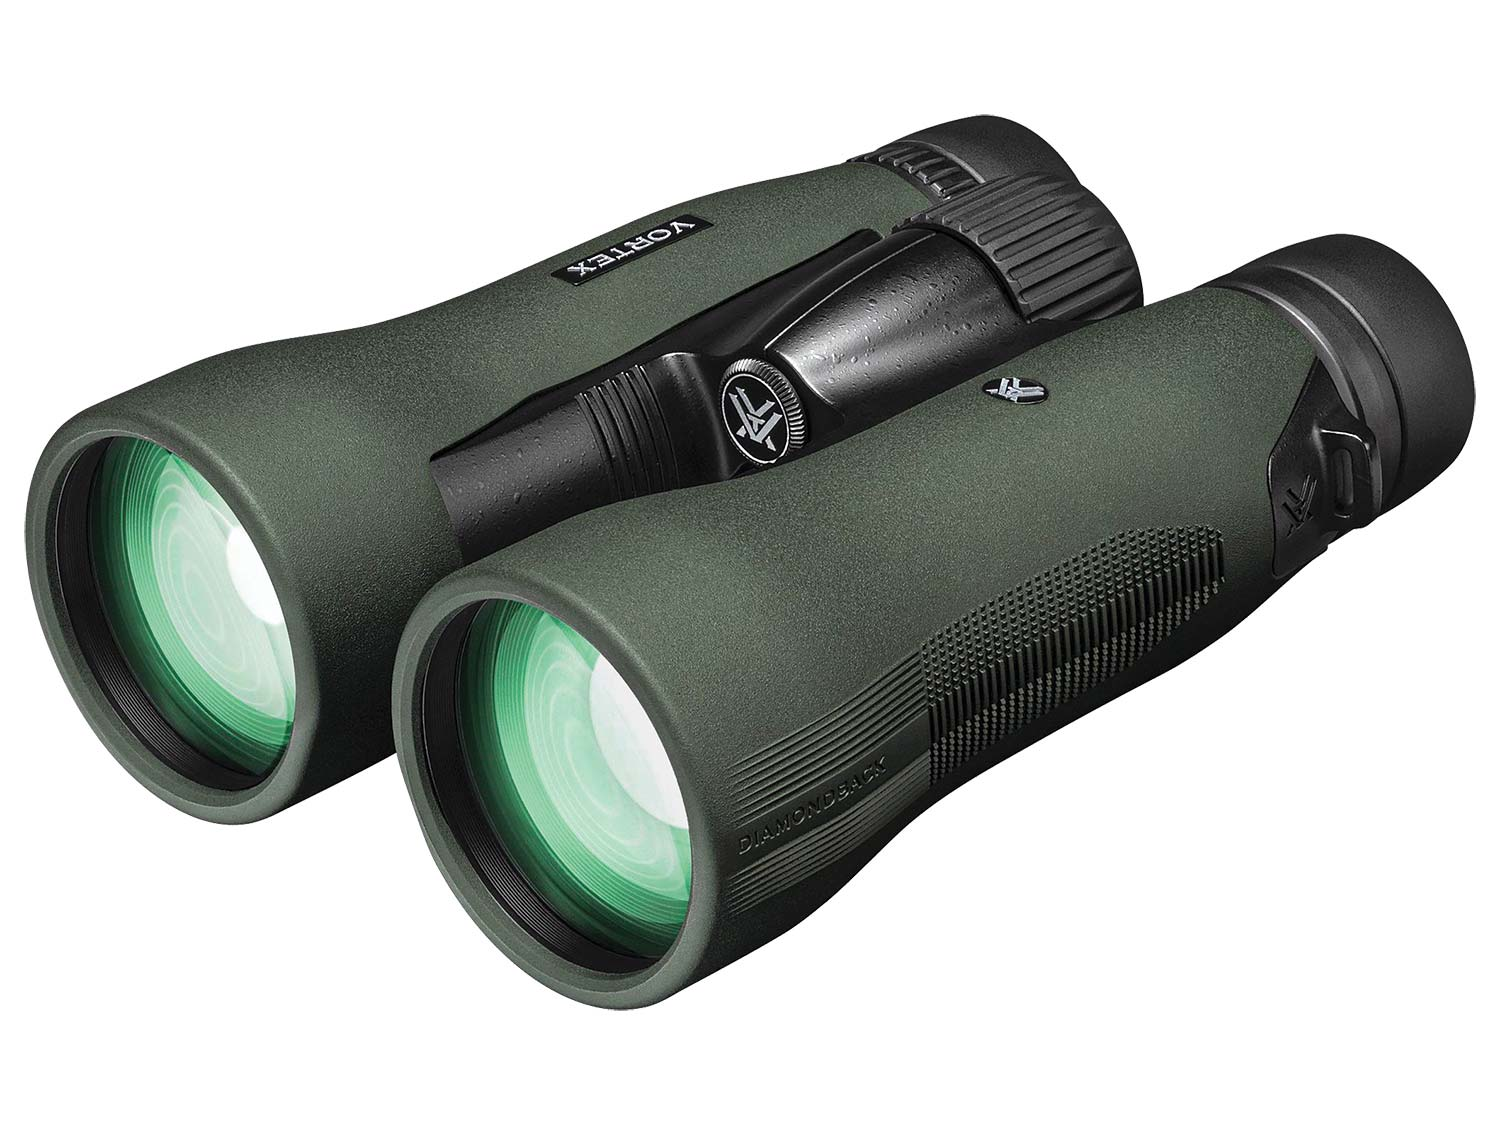 A pair of Vortex Diamondback green binoculars on a white background.